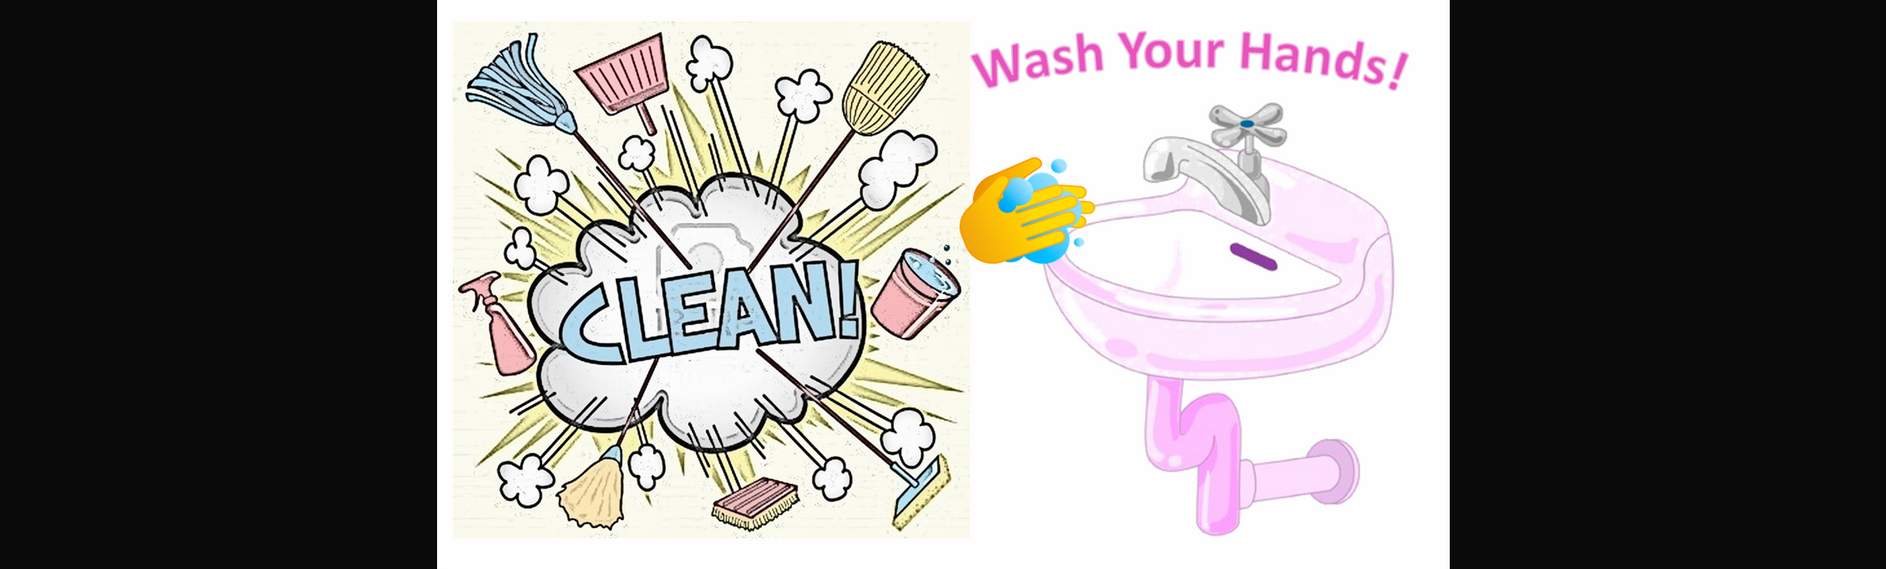 Wash you hands.png